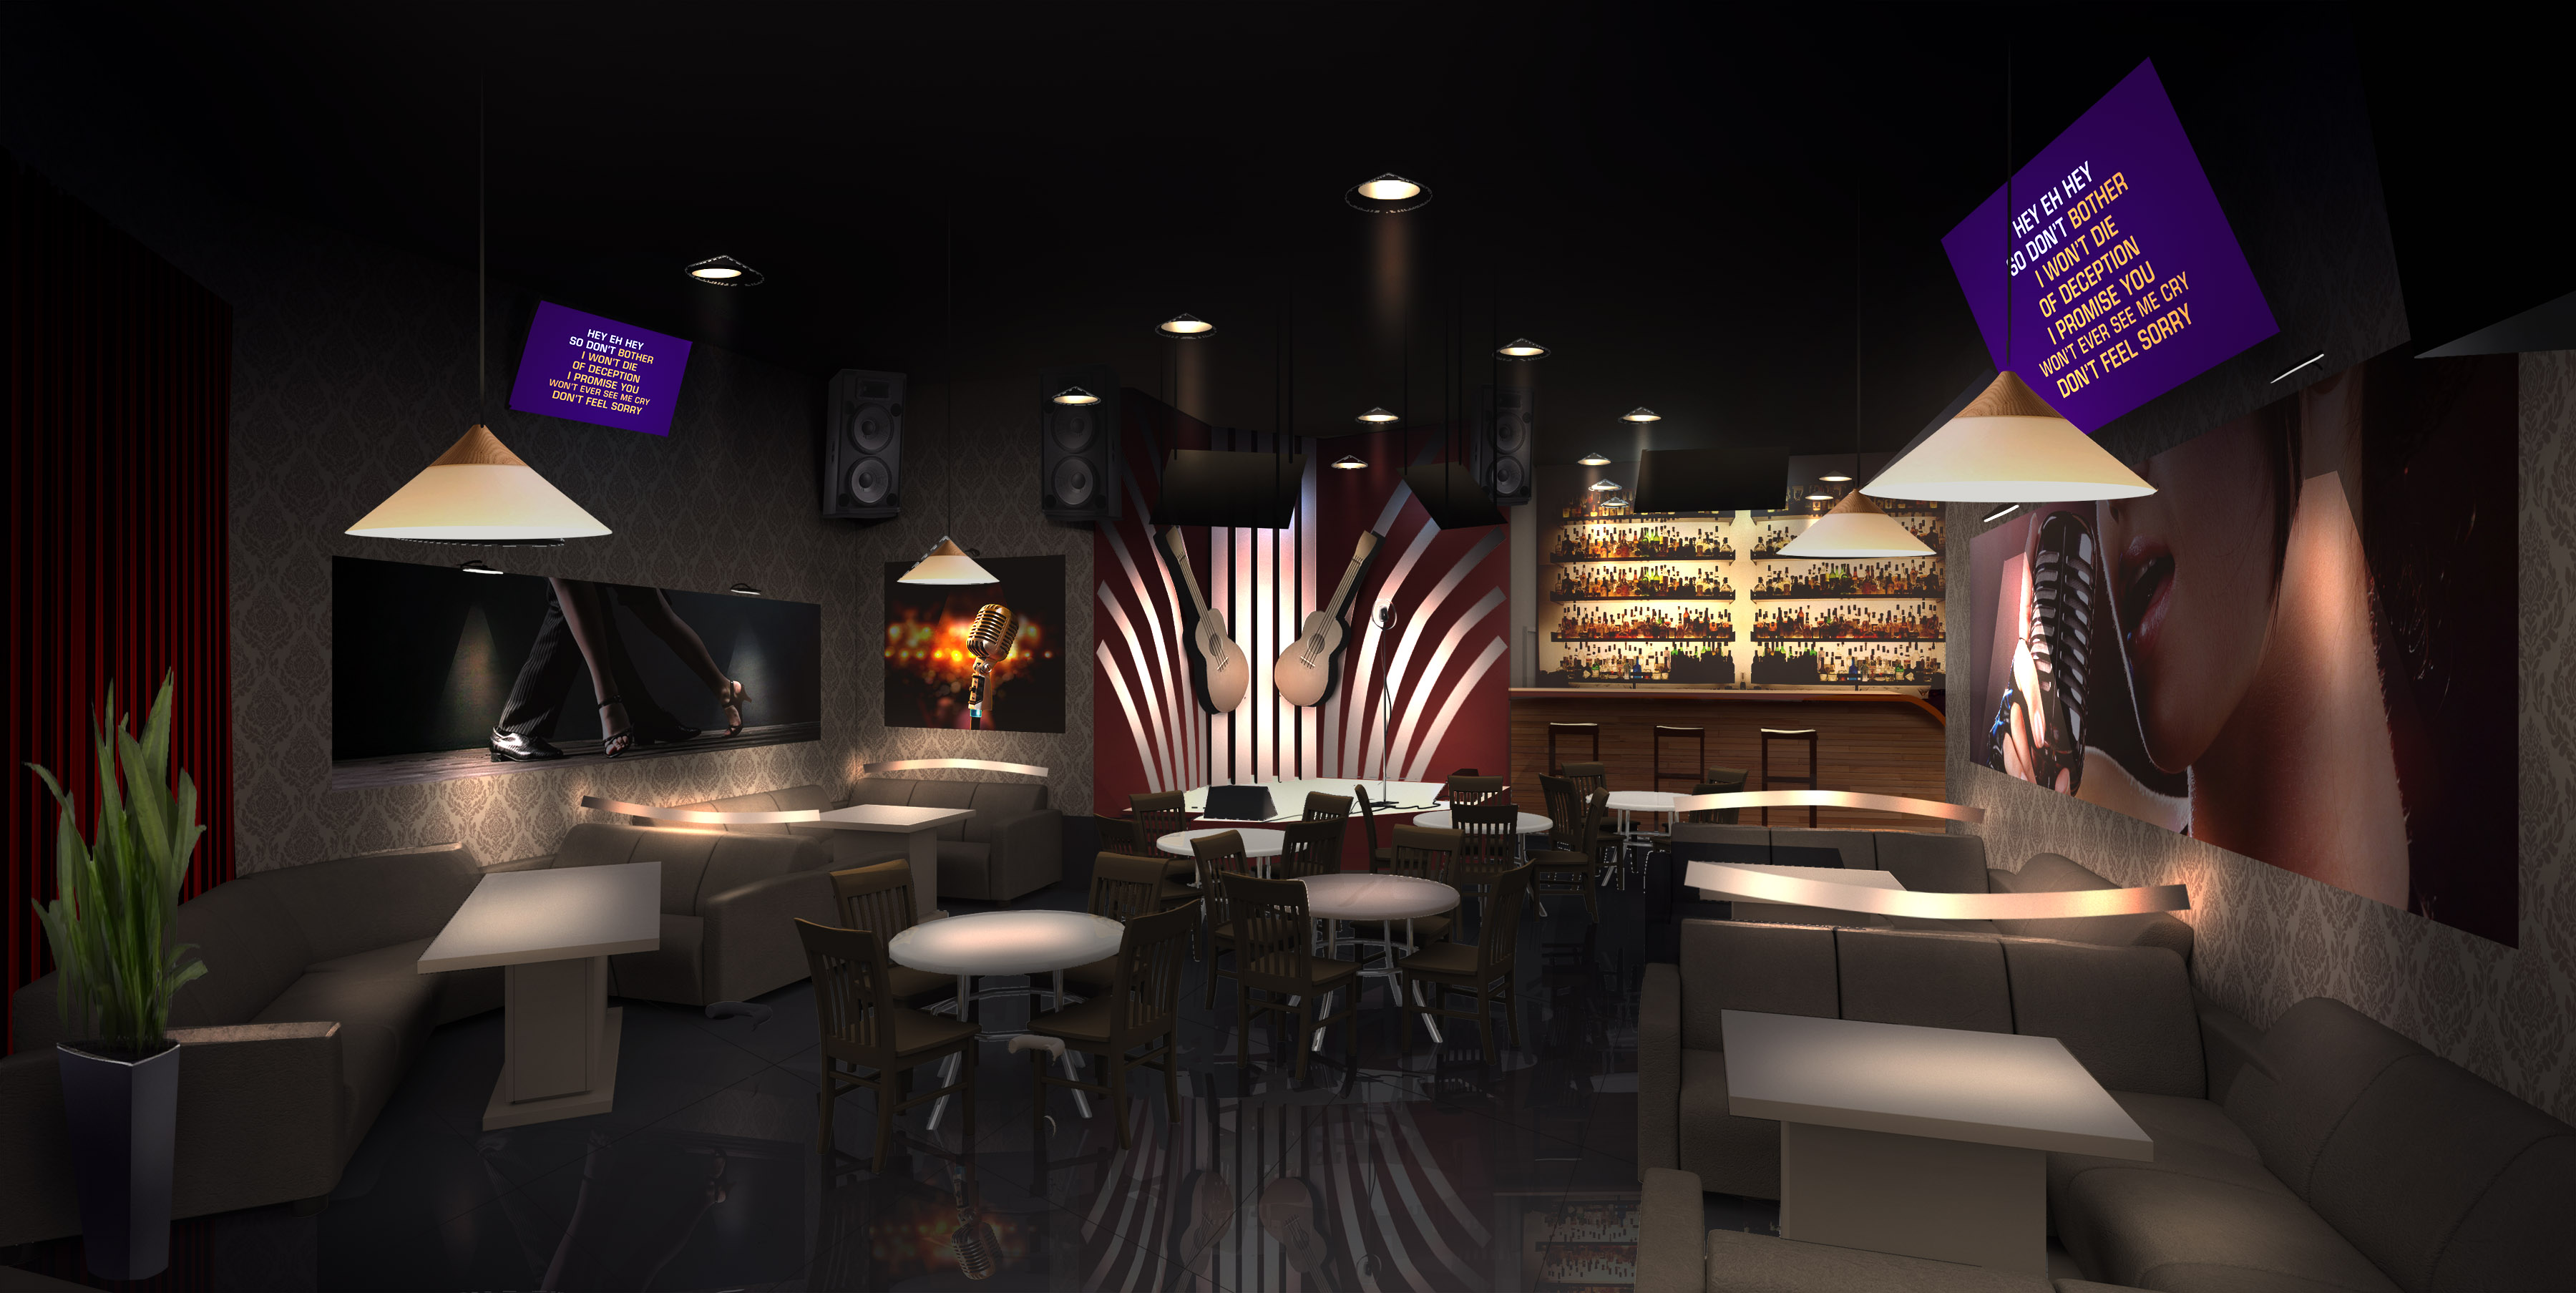 VZ-Identity-bar-interior-01.jpg